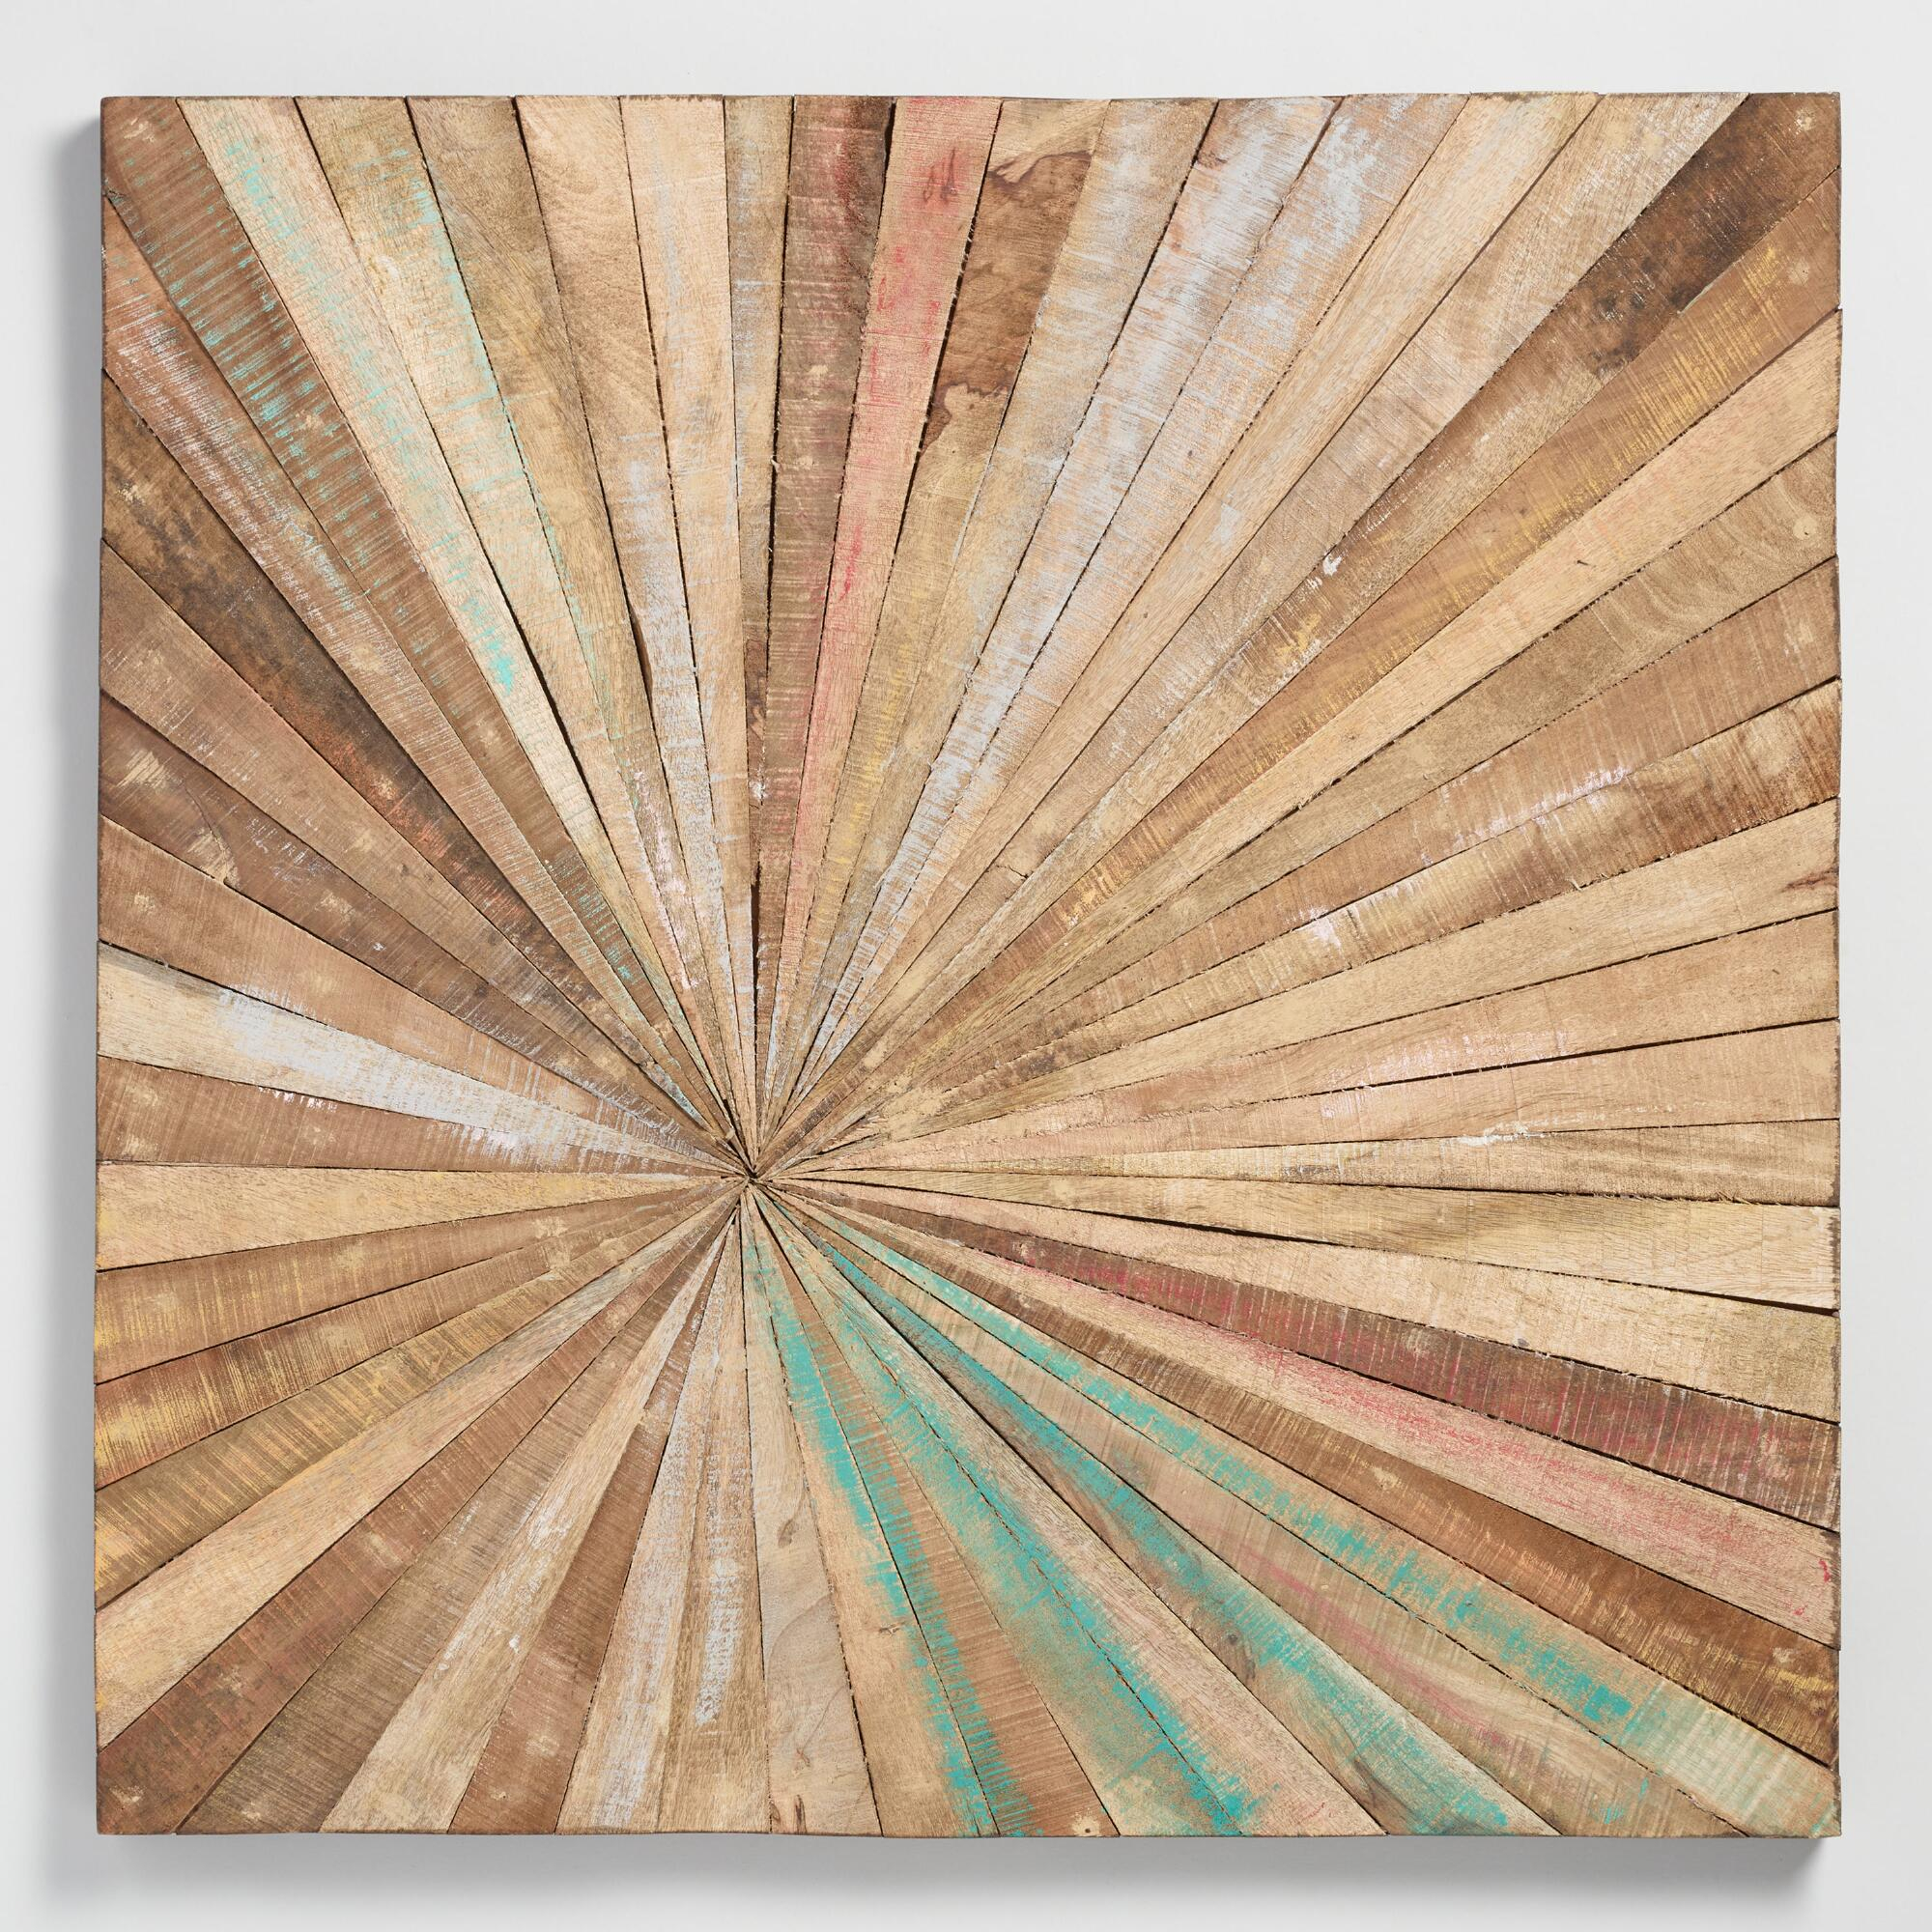 Antiqued Sunburst Wood Panel Wall Decor: Naturalworld intended for 2 Piece Starburst Wall Decor Sets (Image 15 of 30)